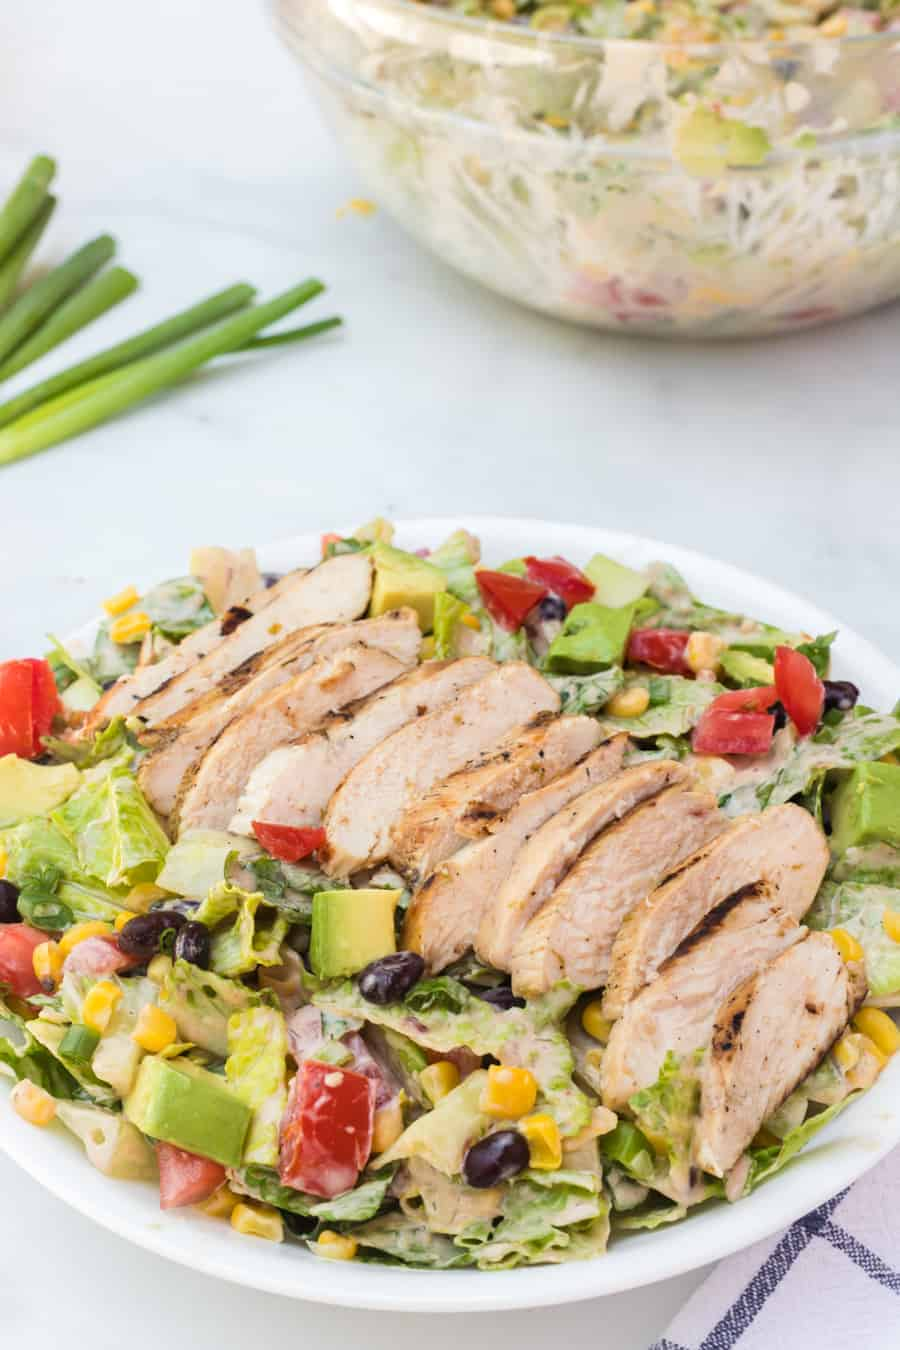 Barbecue ranch chicken salad is the most flavorful salad you'll ever eat, complete with a smoky and sweet dressing, grilled chicken, avocado, tomato, corn, romaine, and a whole lot of other vibrant veggies.